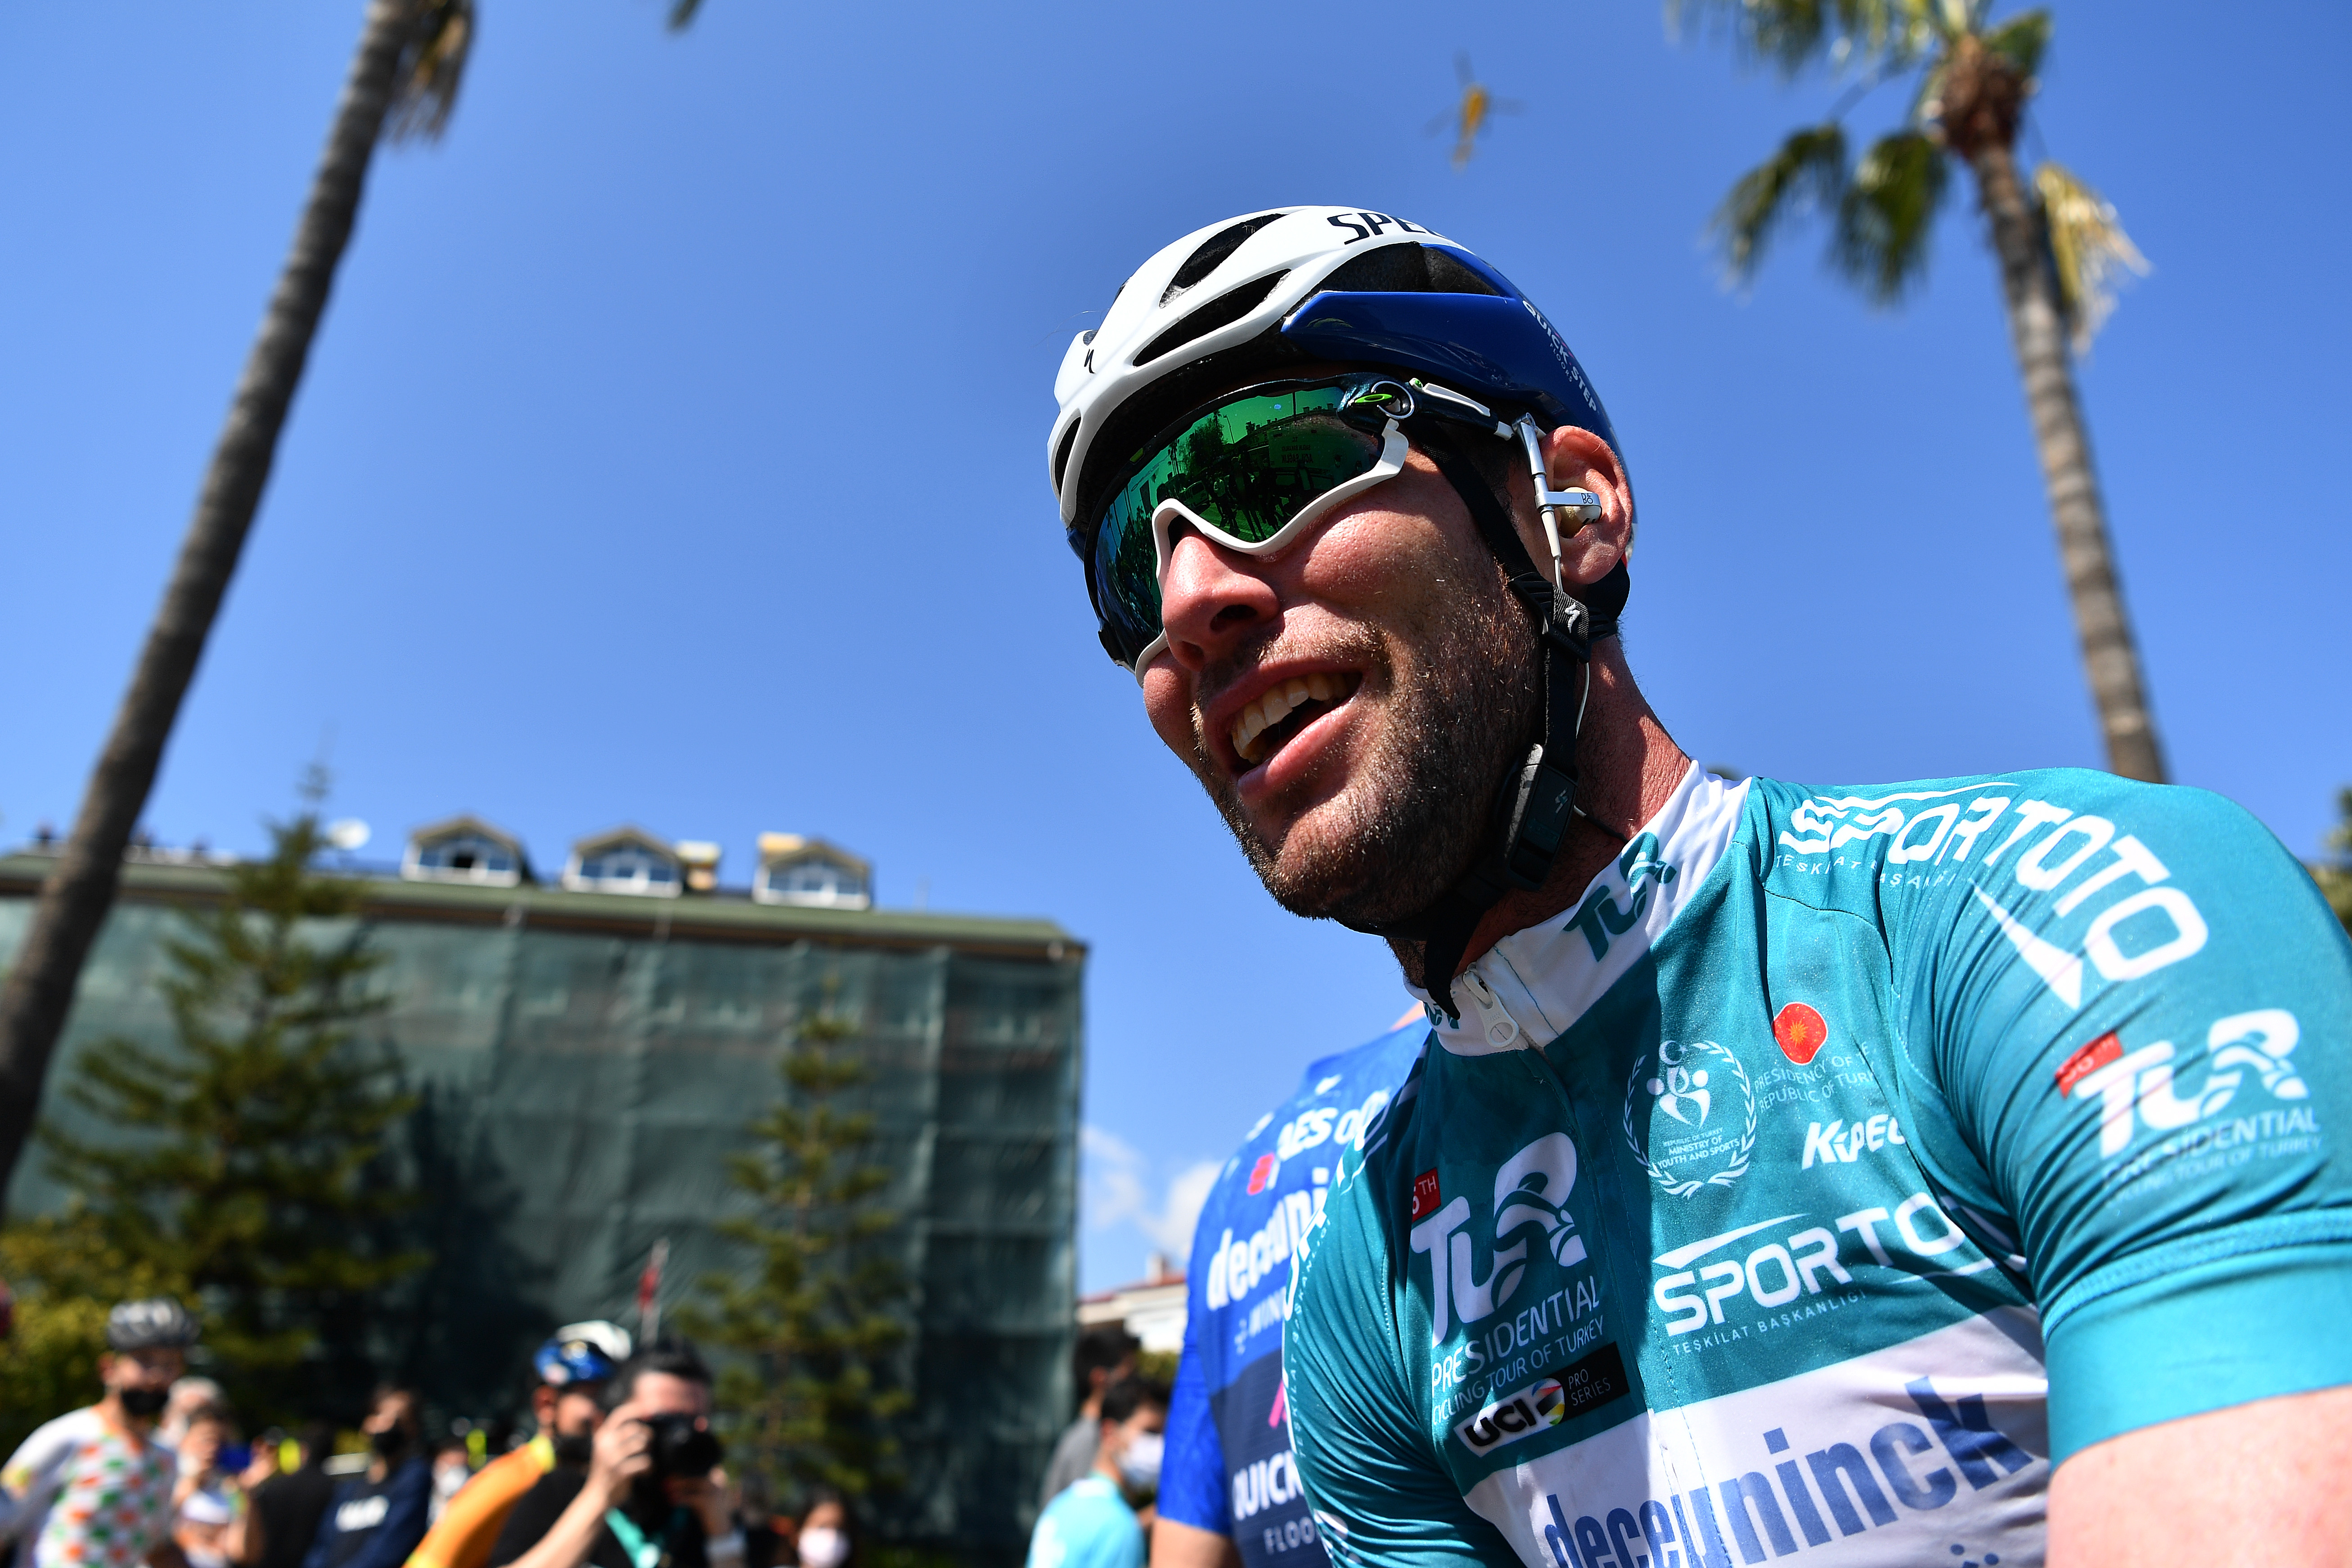 Mark Cavendish wins stage 3 of the 2021 Tour of Turkey